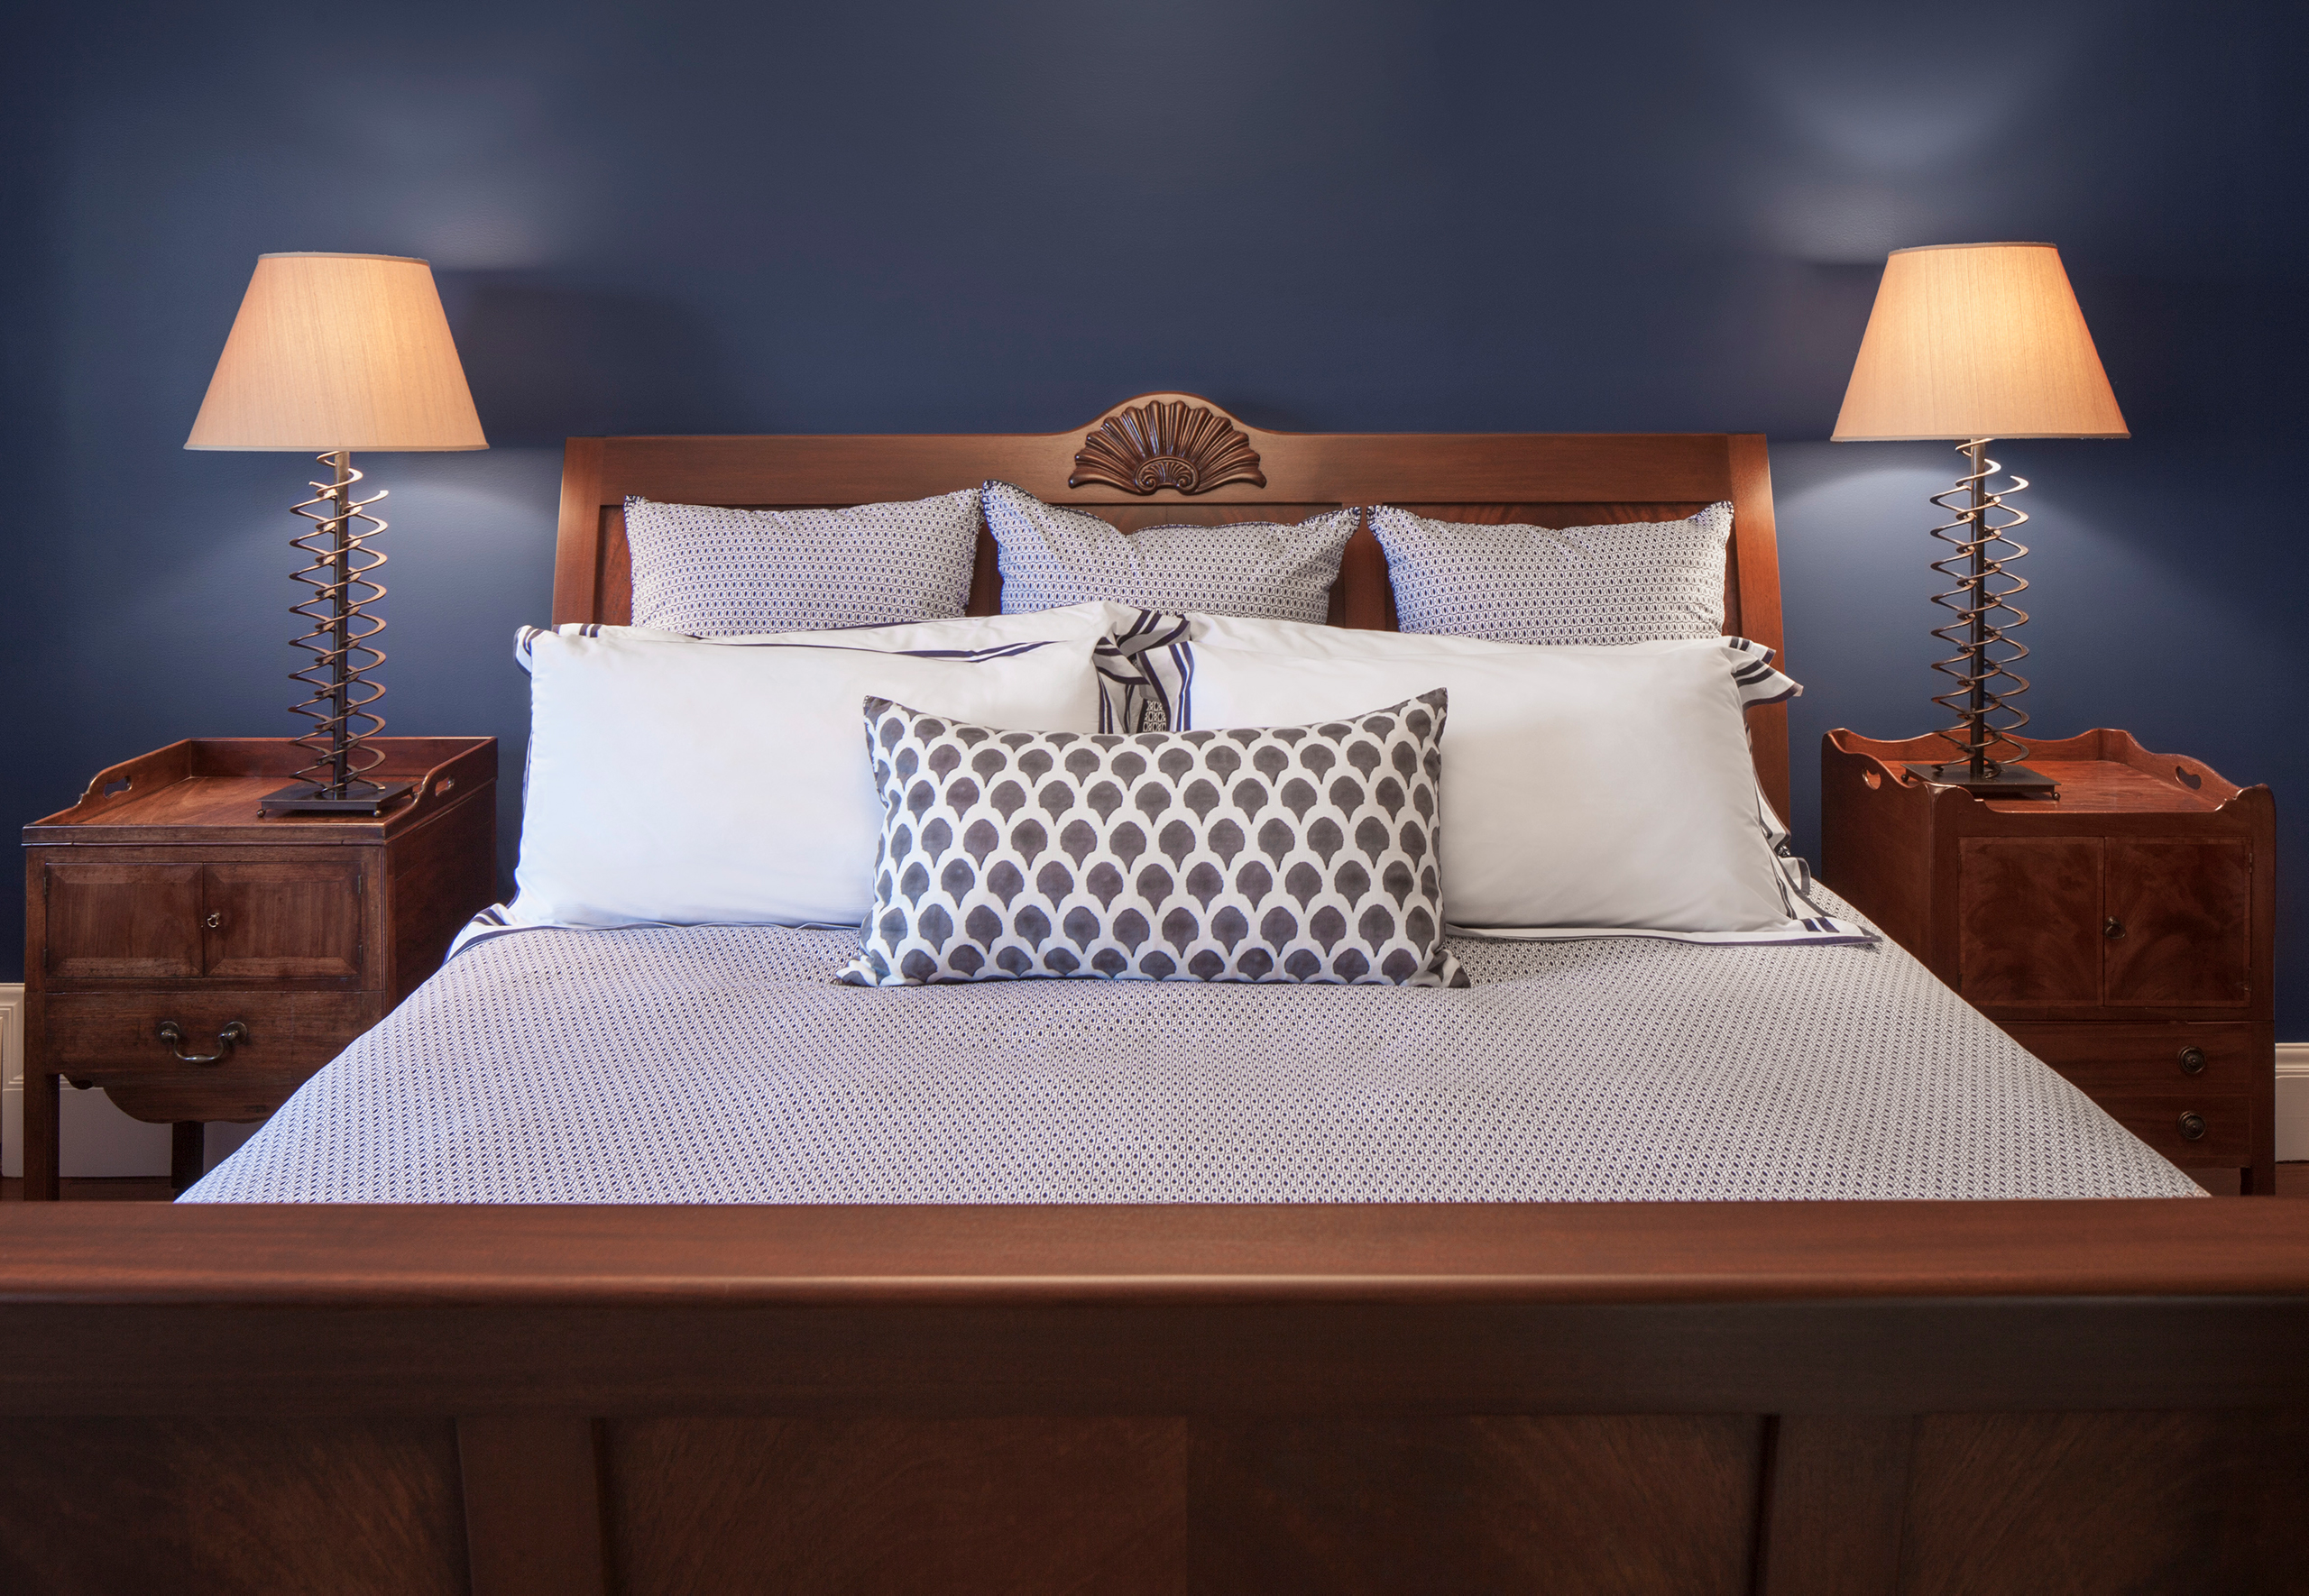 dark blue room with bed